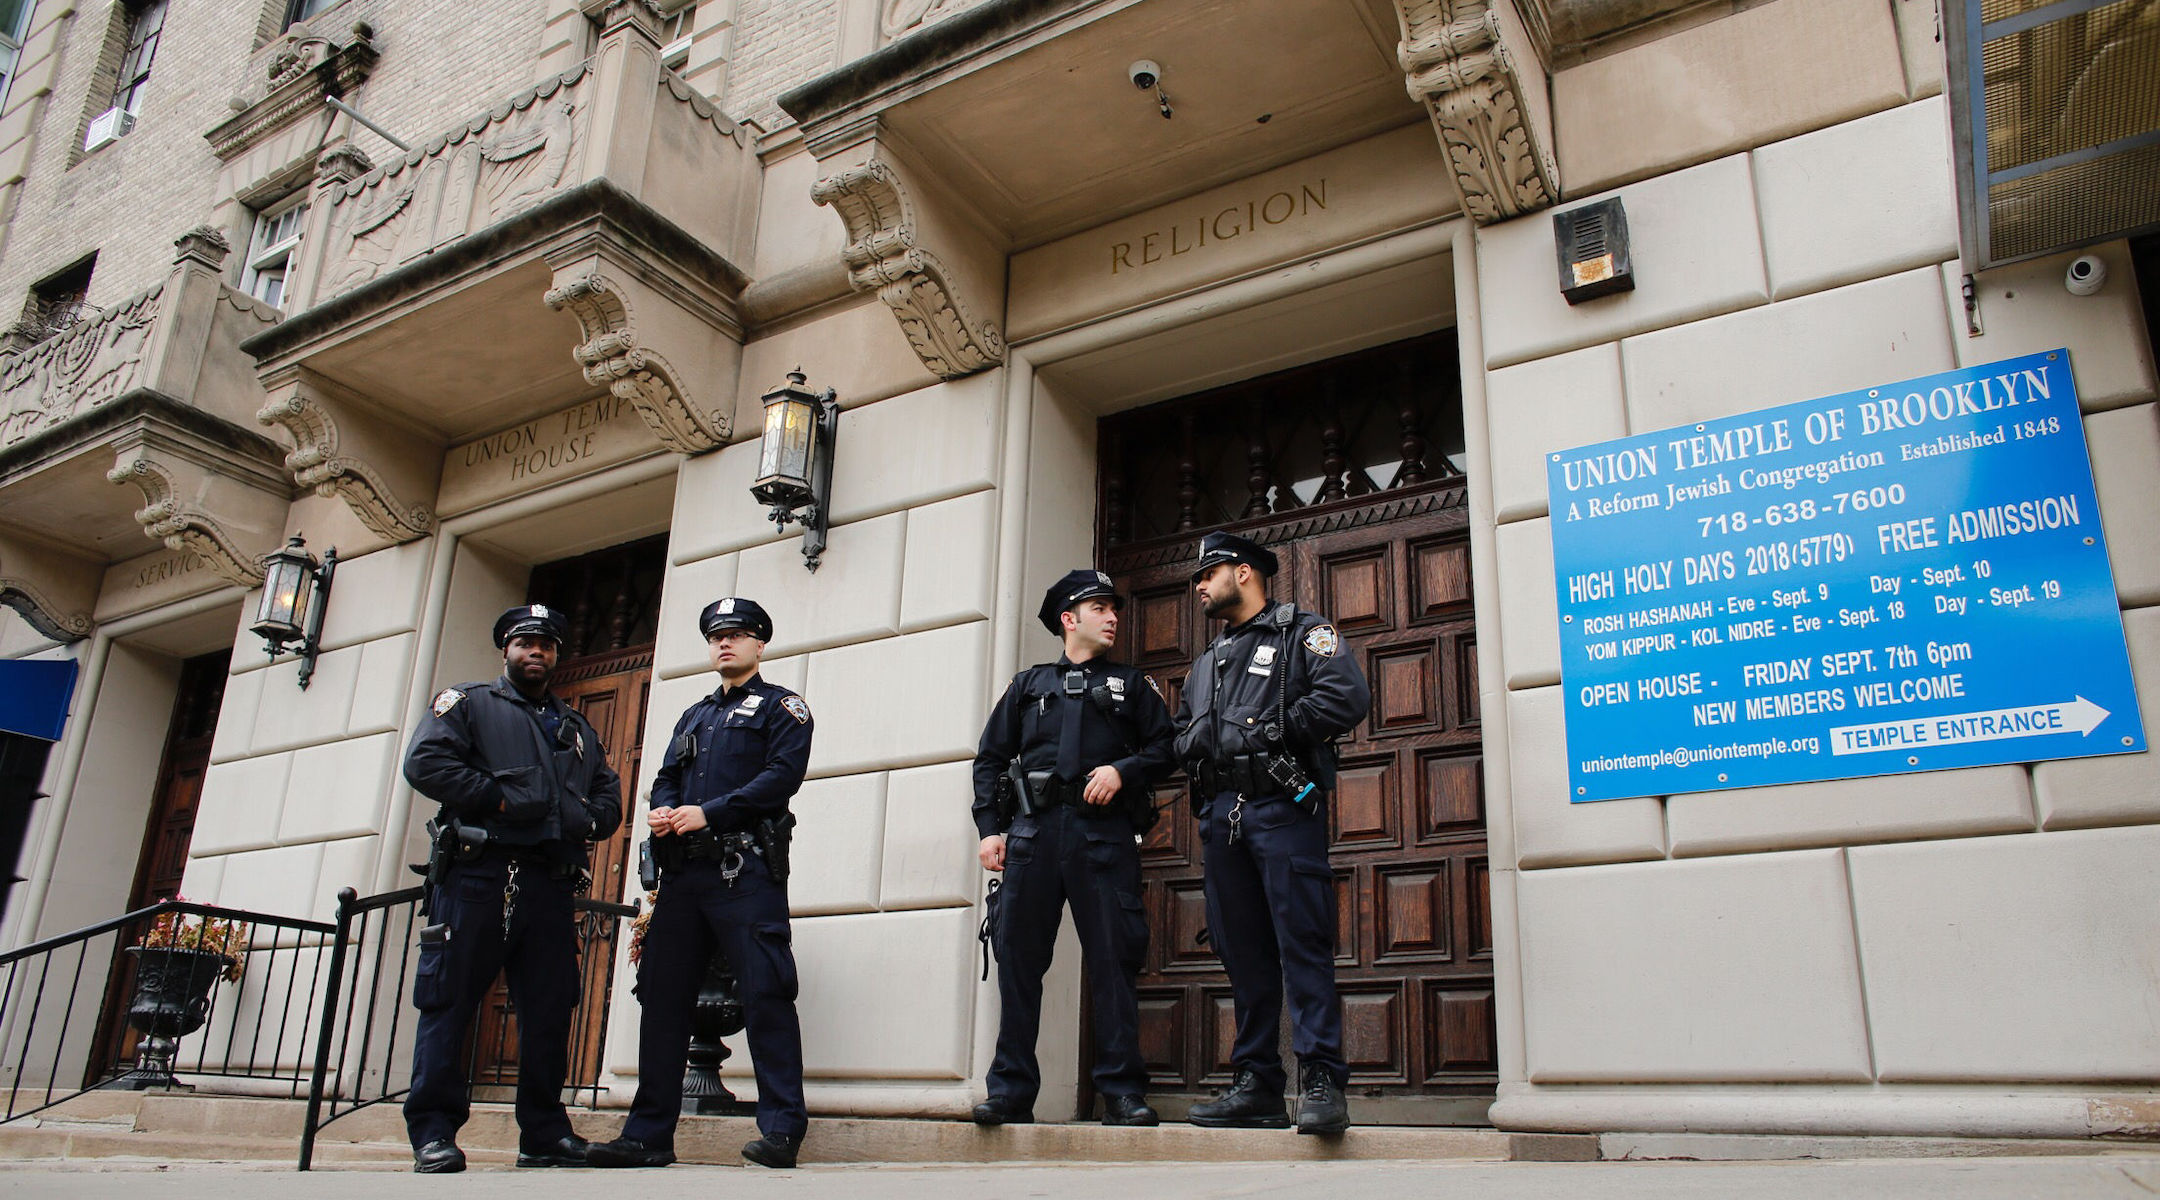 NYPD officers stand guard at the door of the Union Temple of Brooklyn, after it was grafittied, in New York City on November 2, 2018. (Kena Betancur/AFP via Getty Images)